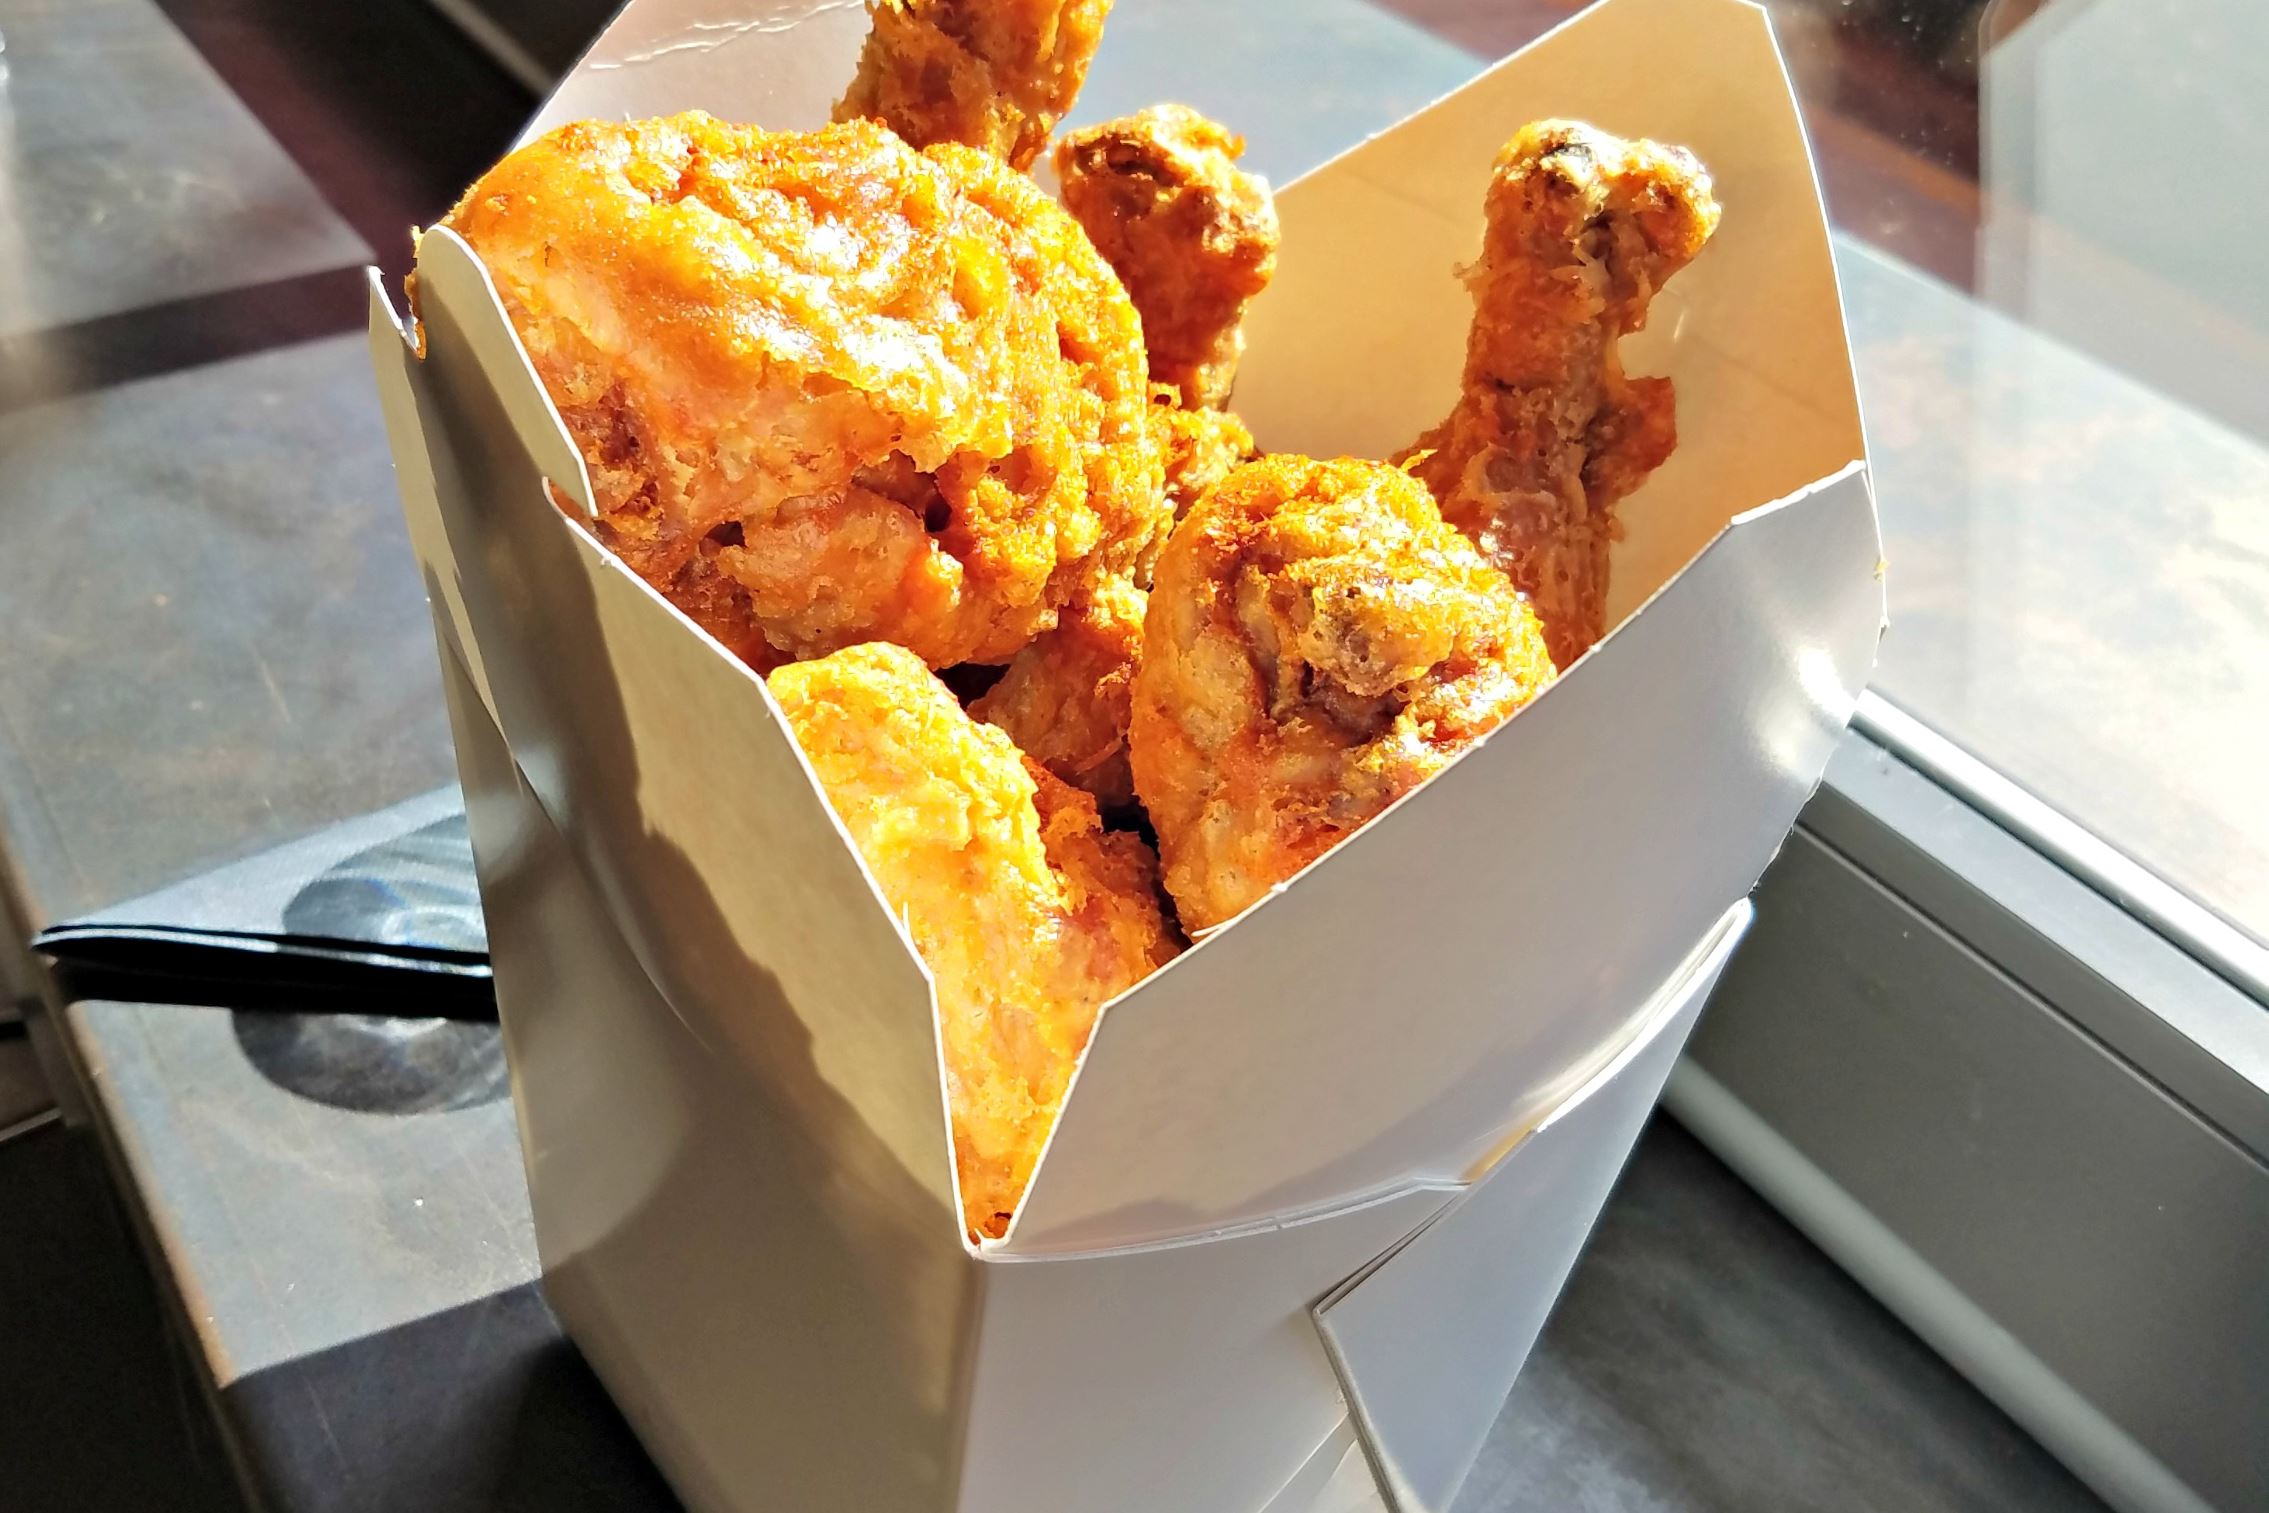 kipollo5.jpg Serving Korean fried chicken, pictured, Ki Pollo is opening within the month at 4407 Butler St., from Domenic Branduzzi of Piccolo Forno, Roger Li of Umami Izakaya, and his wife, Claudia Moyano, managing partner and chef.